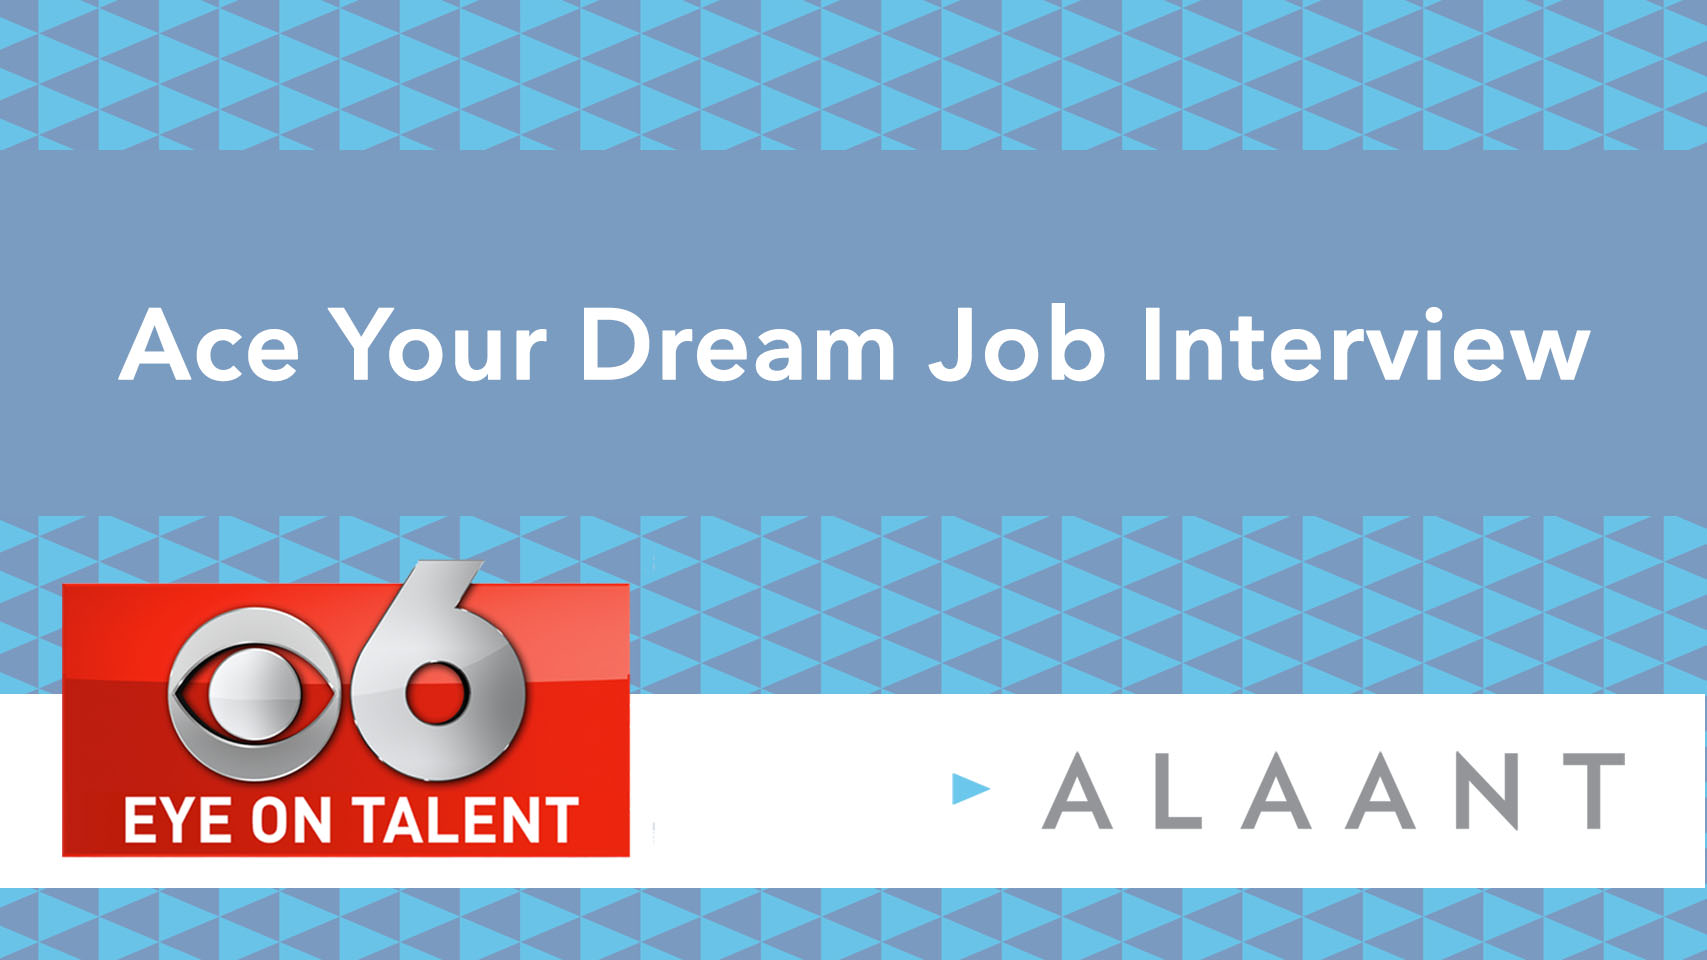 Eye on Talent: Ace Your Dream Job Interview